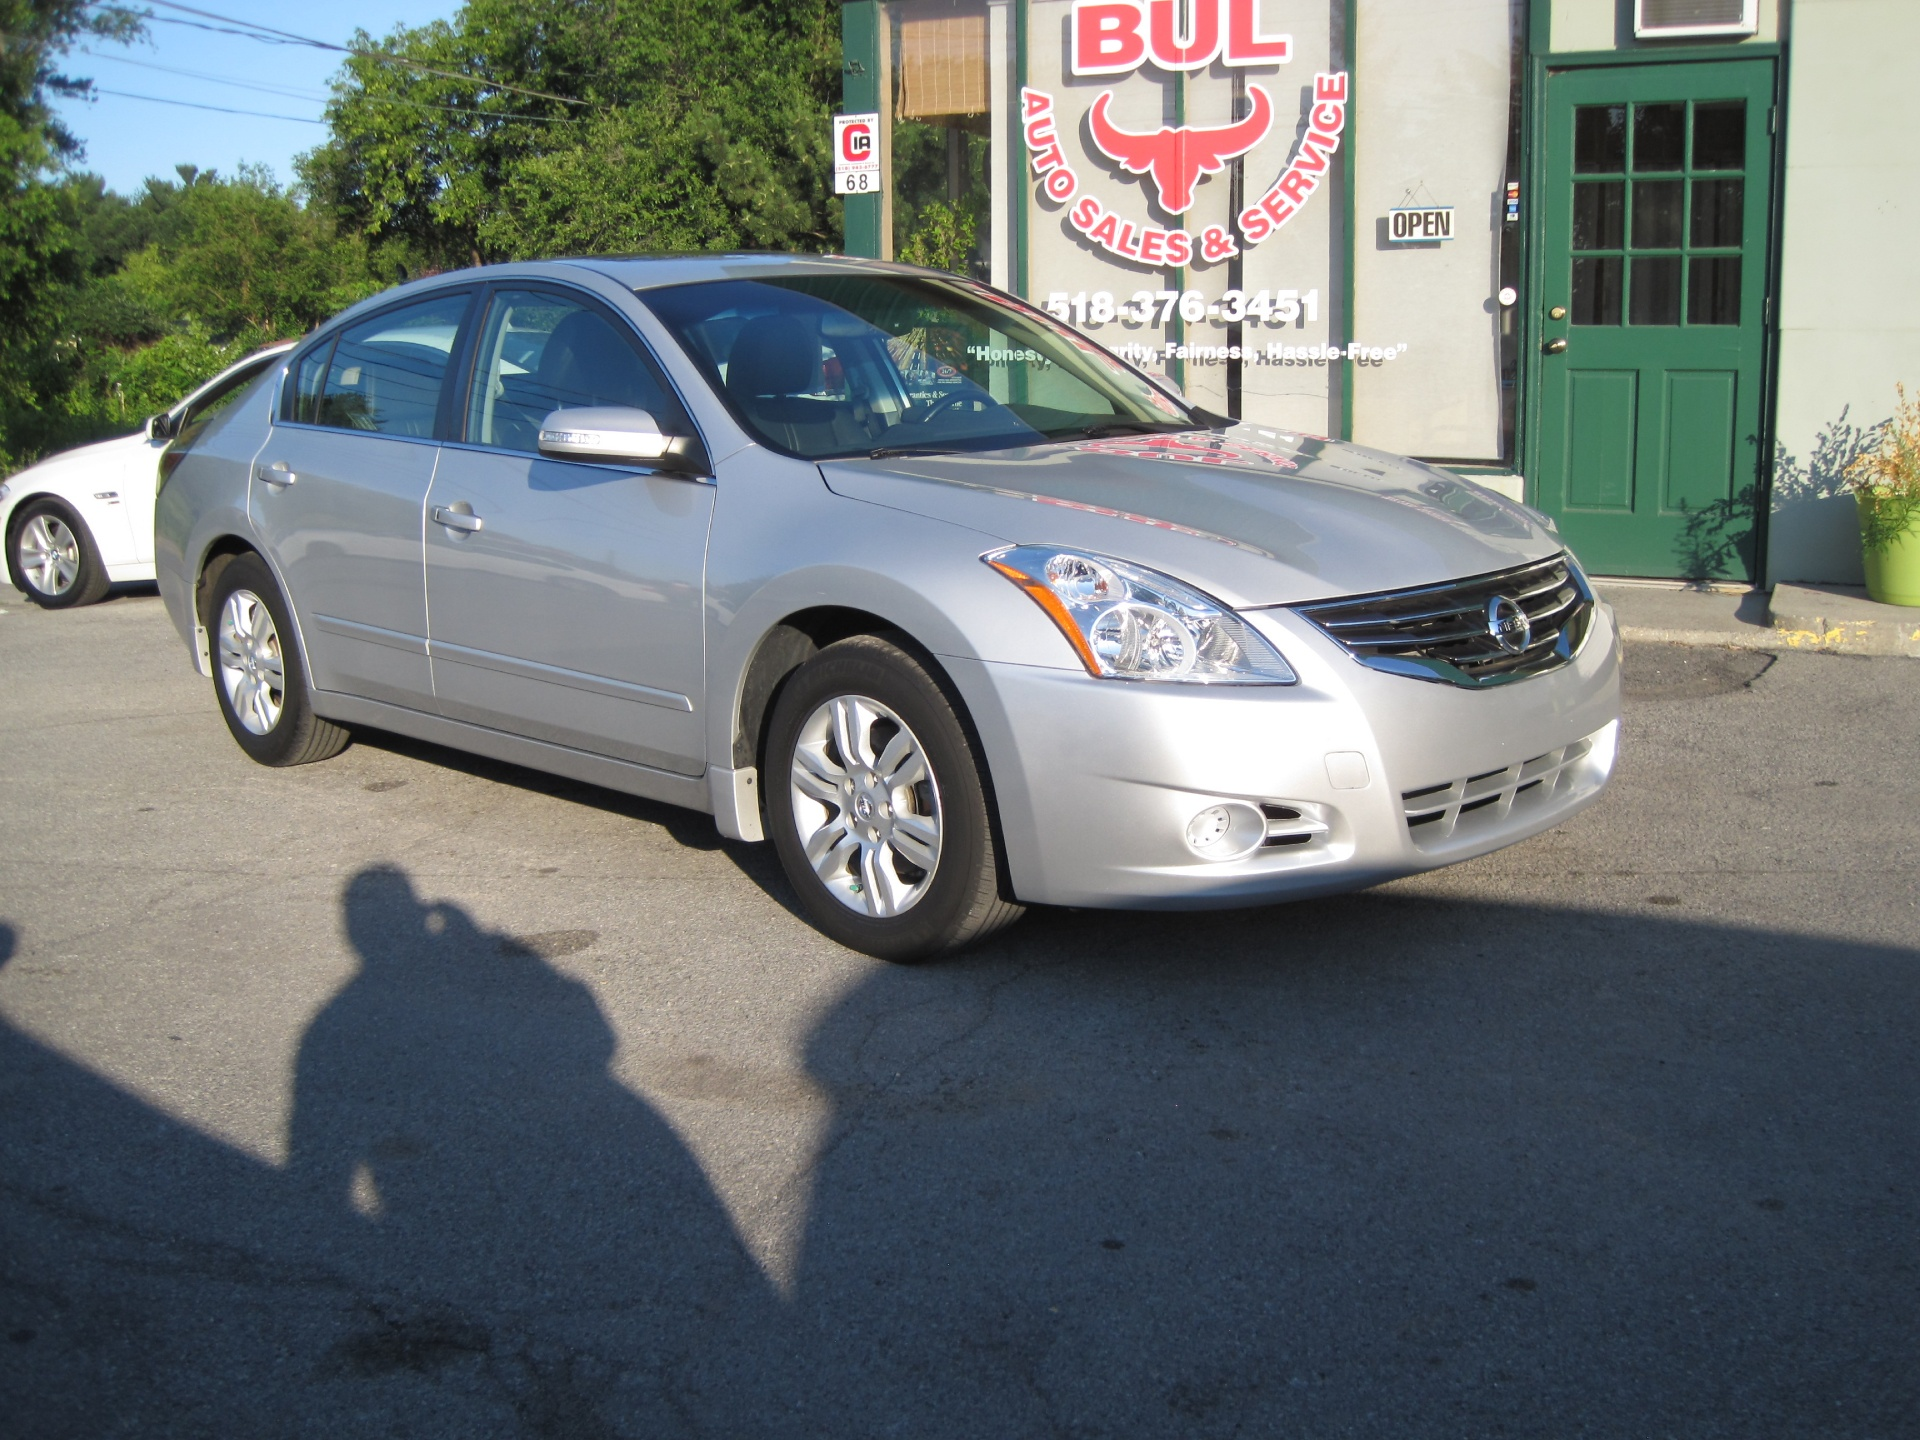 Exceptional Used 2012 Nissan Altima 2.5 SL LOADED,LEATHER,SUNROOF,HEATED SEATS,BACK